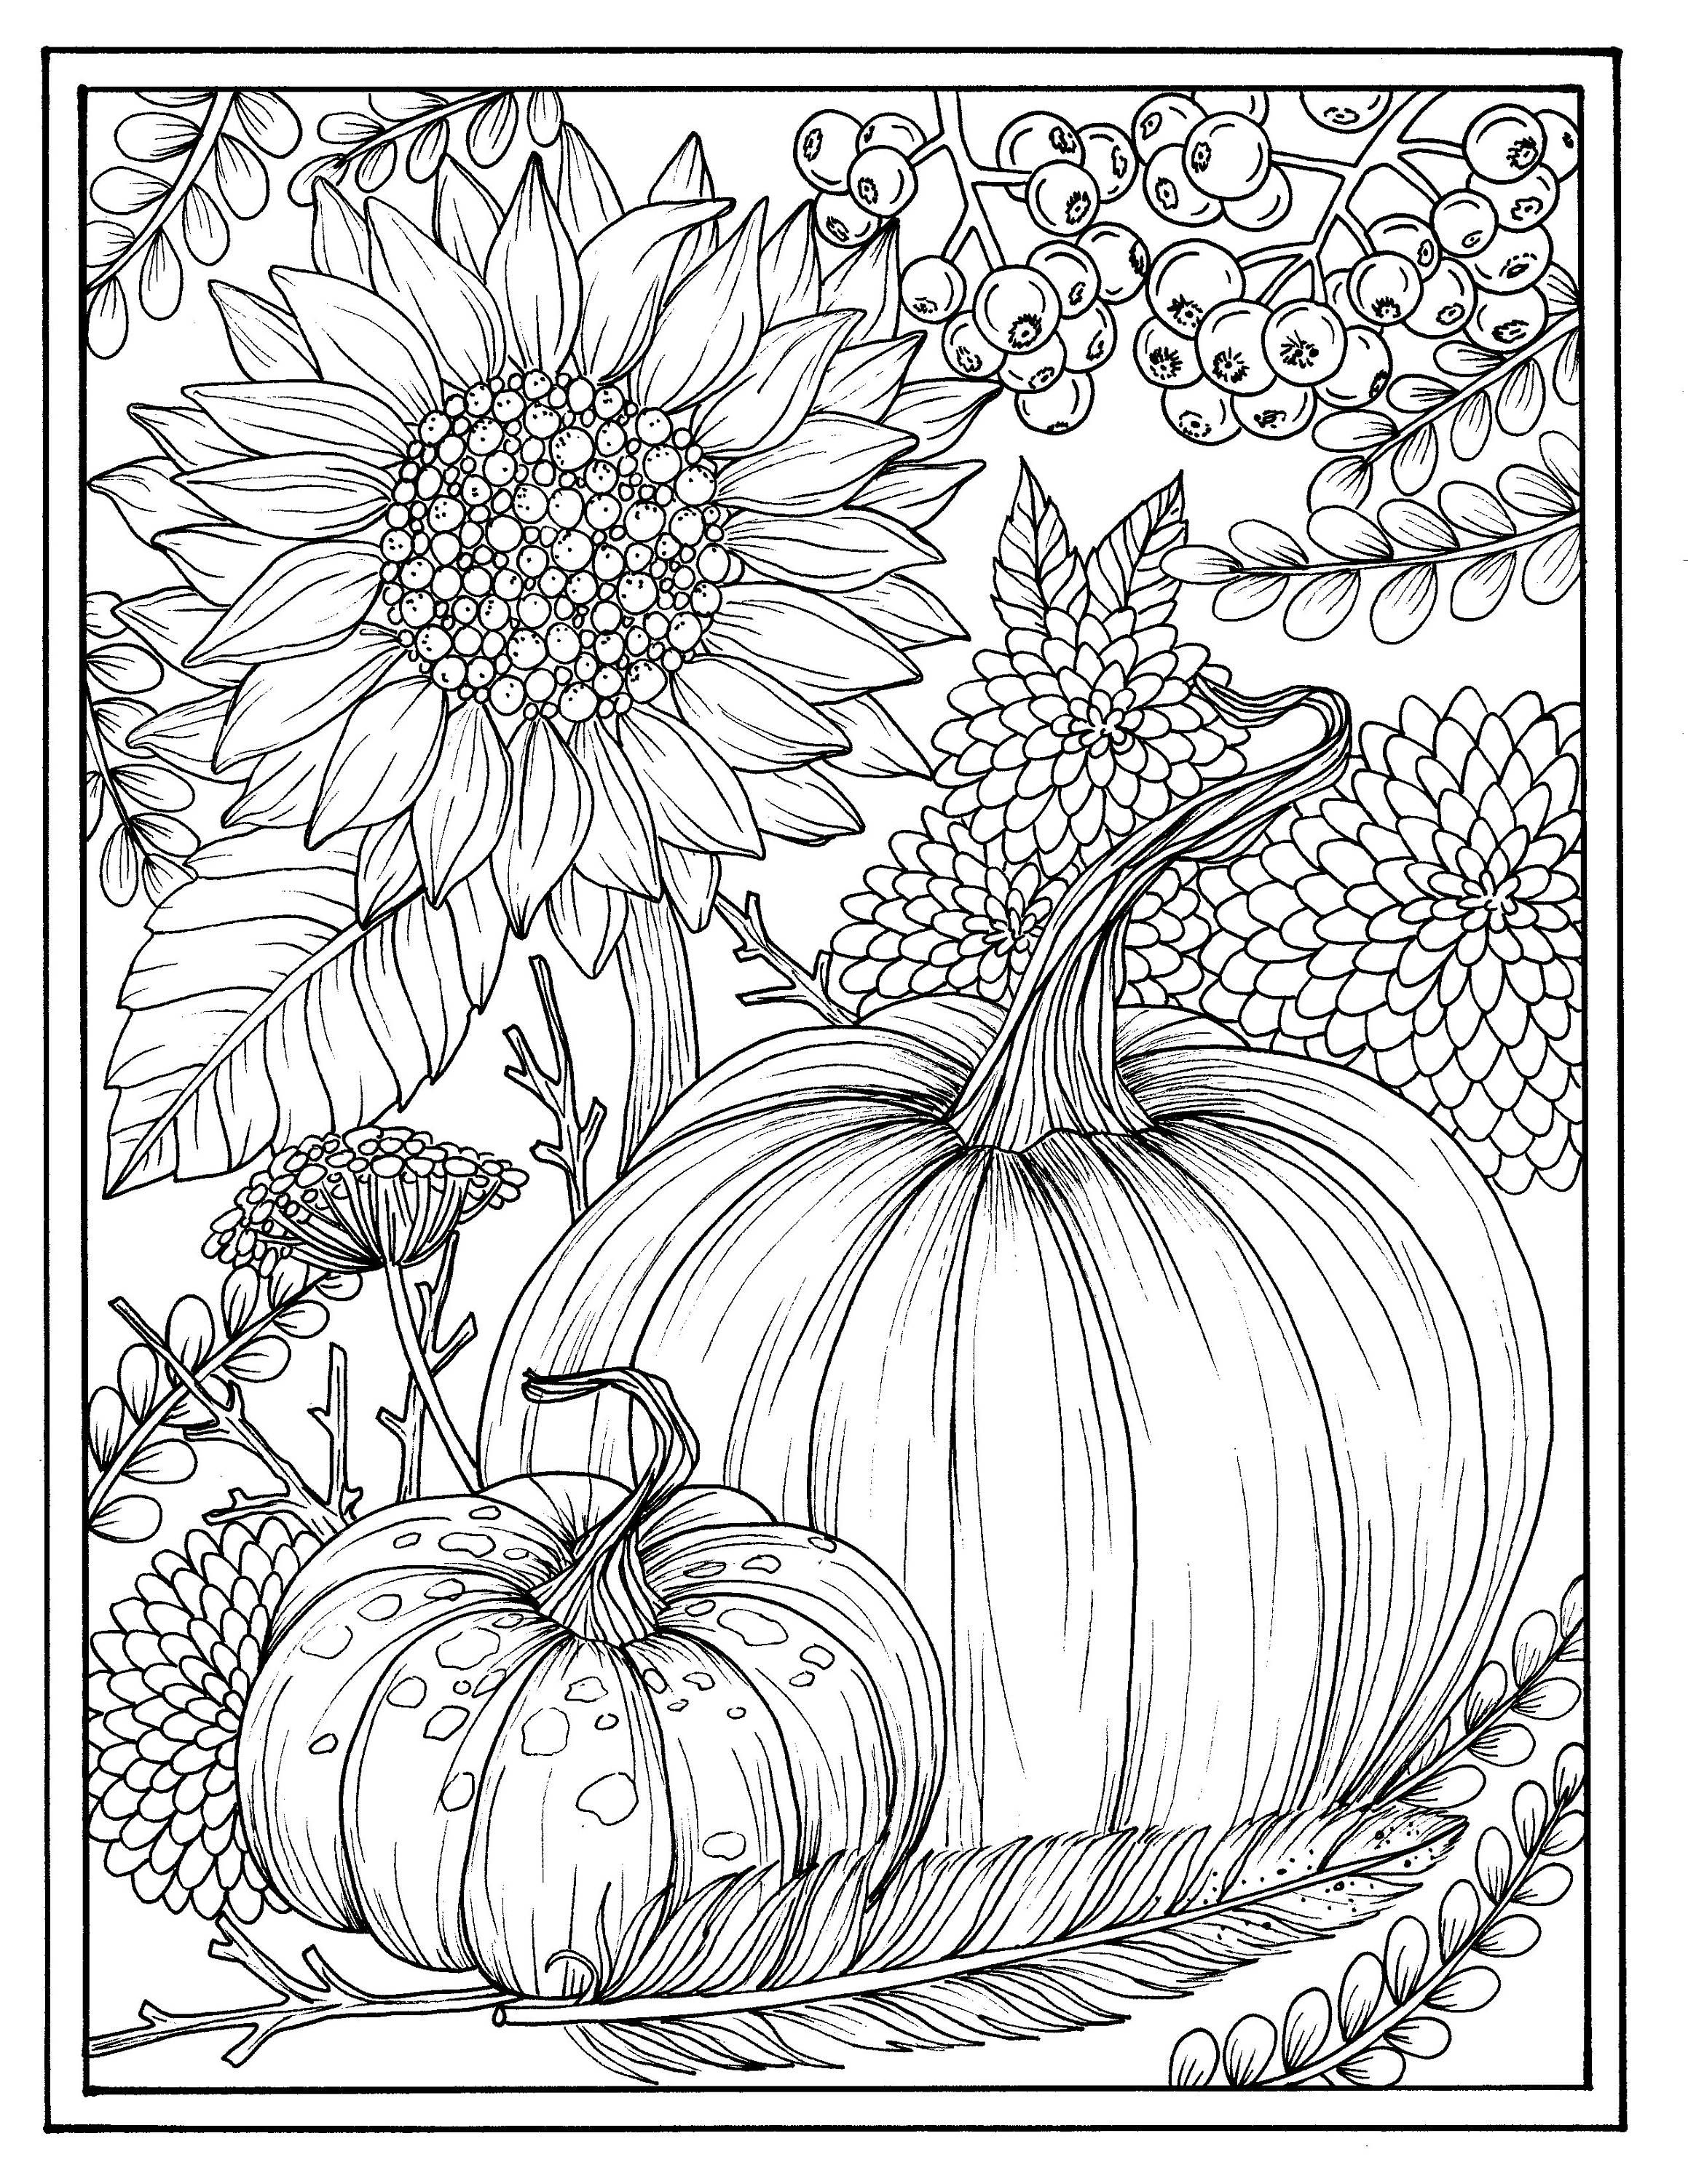 Fall flowers and pumpkins digital coloring page Thanksgiving, mums ...